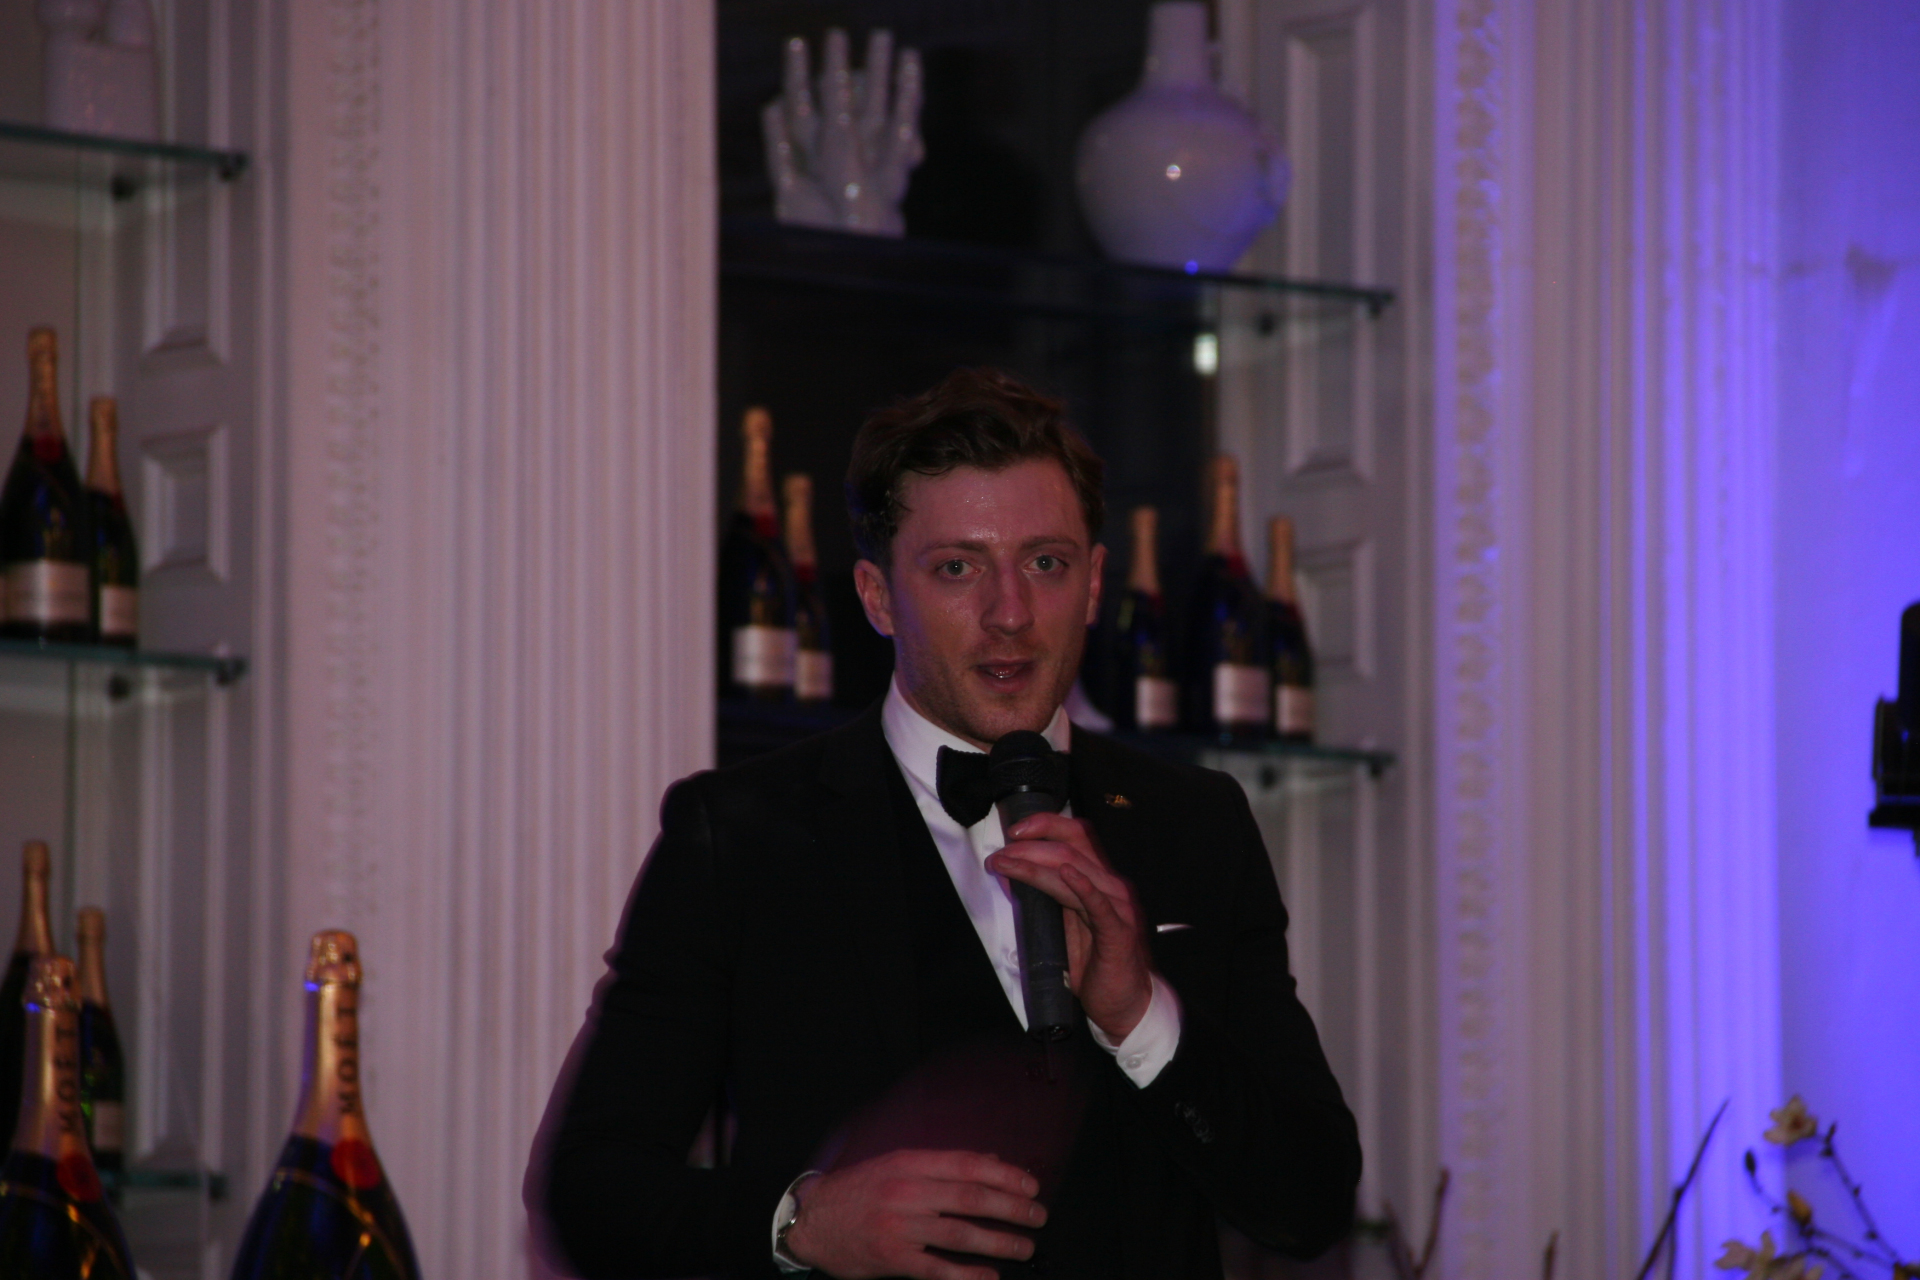 Christian Macleod at The Corinthian Club